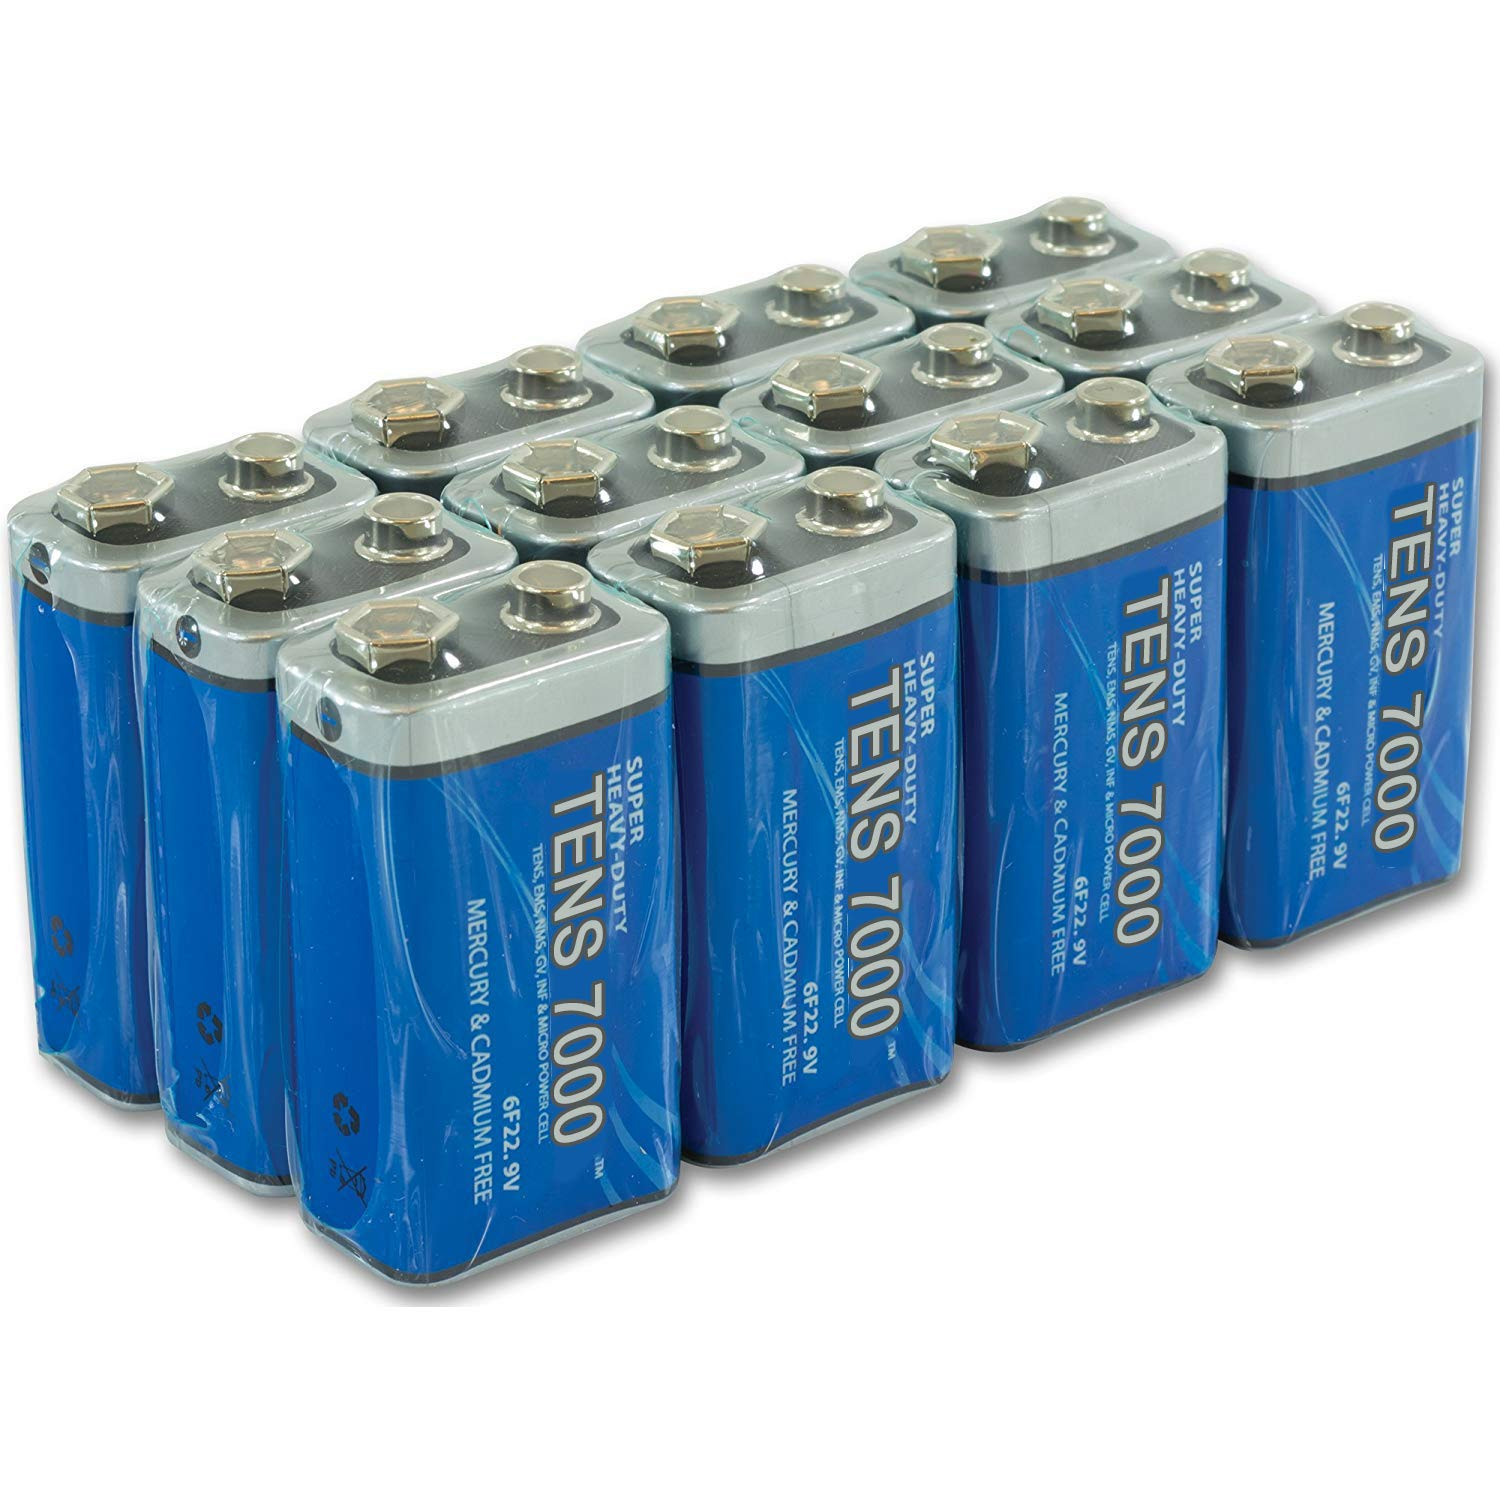 9 Volt Battery For Smoke Alarms, TENS Units, and Other Household Devices, 12 Pack, 9V Batteries, Heavy Duty by TENS 7000